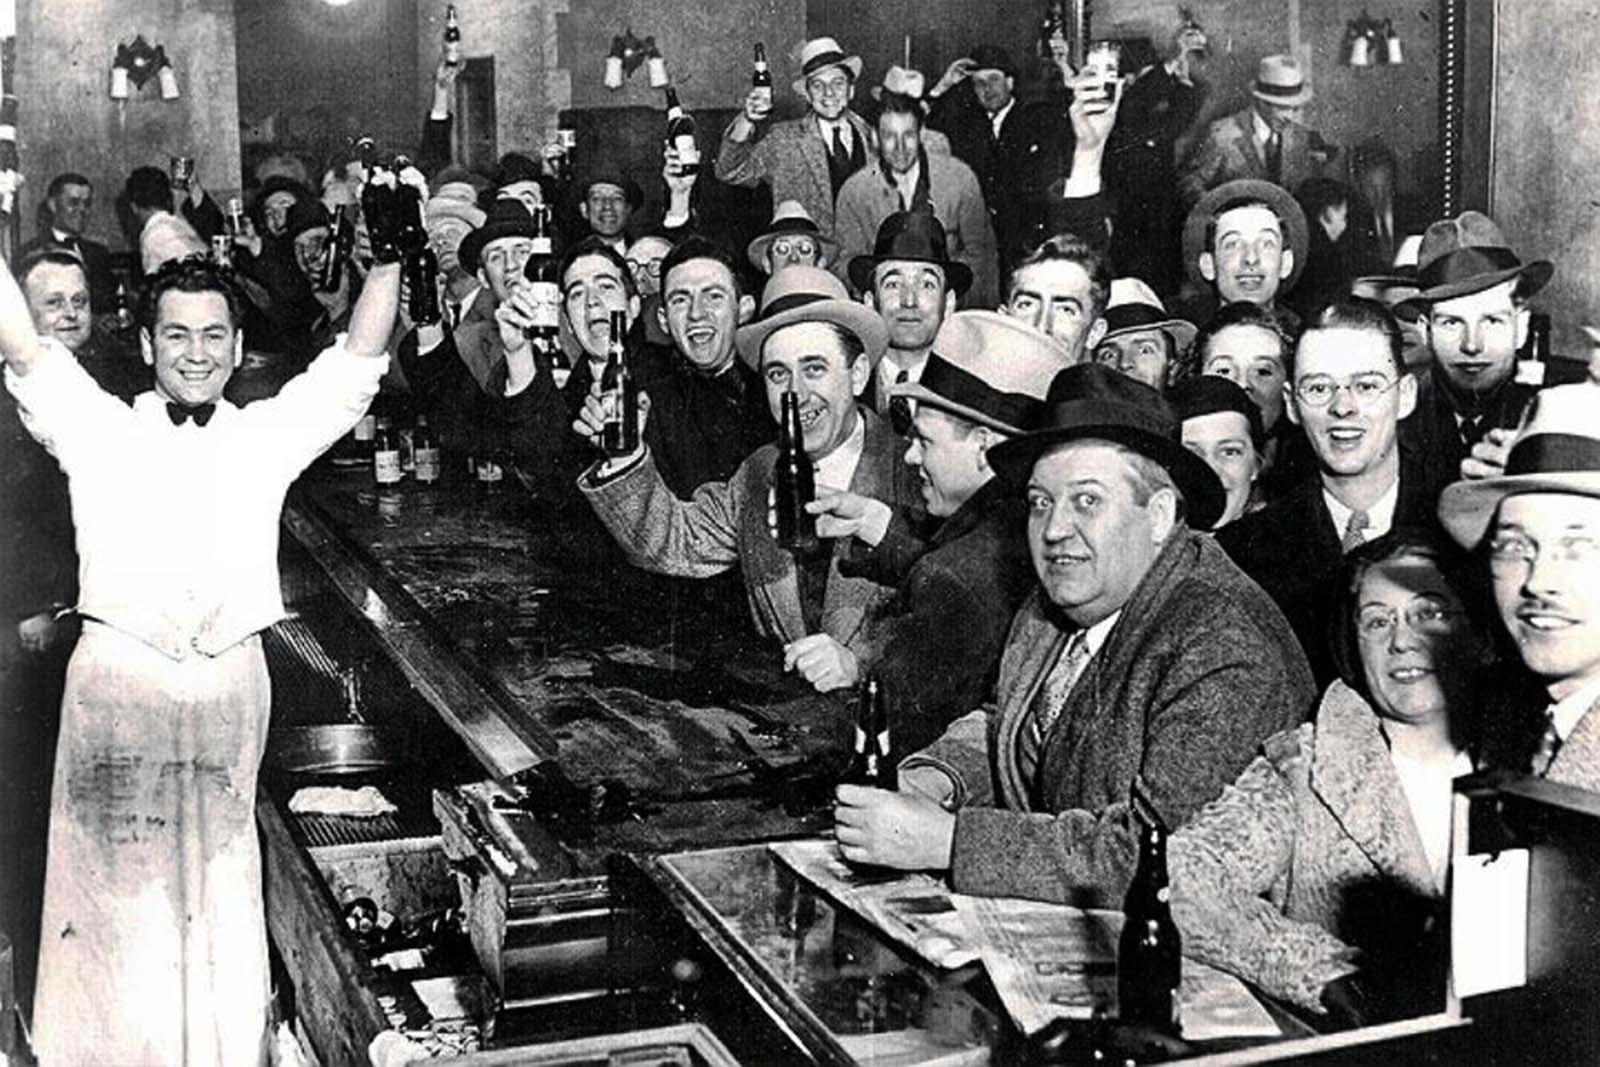 The night they ended Prohibition, December 5th, 1933.